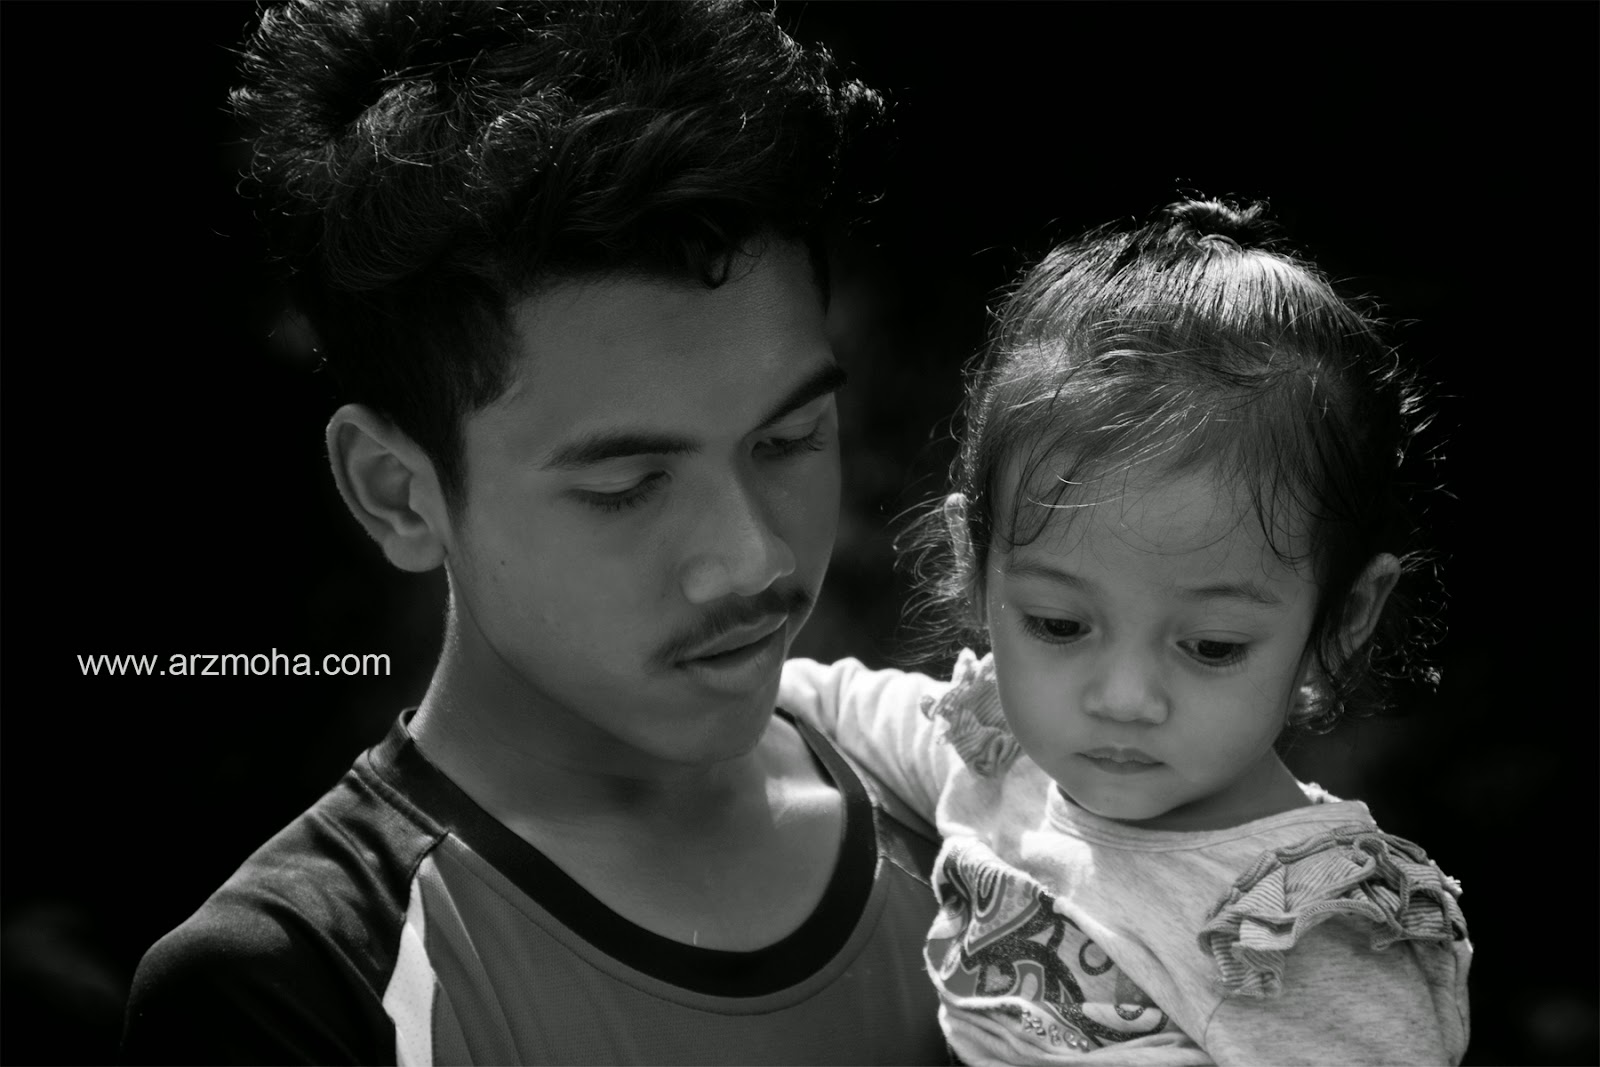 Afiq, Fikry, Almira, Faqihah, Kids, Boy, Girl, Cousin, Black and White